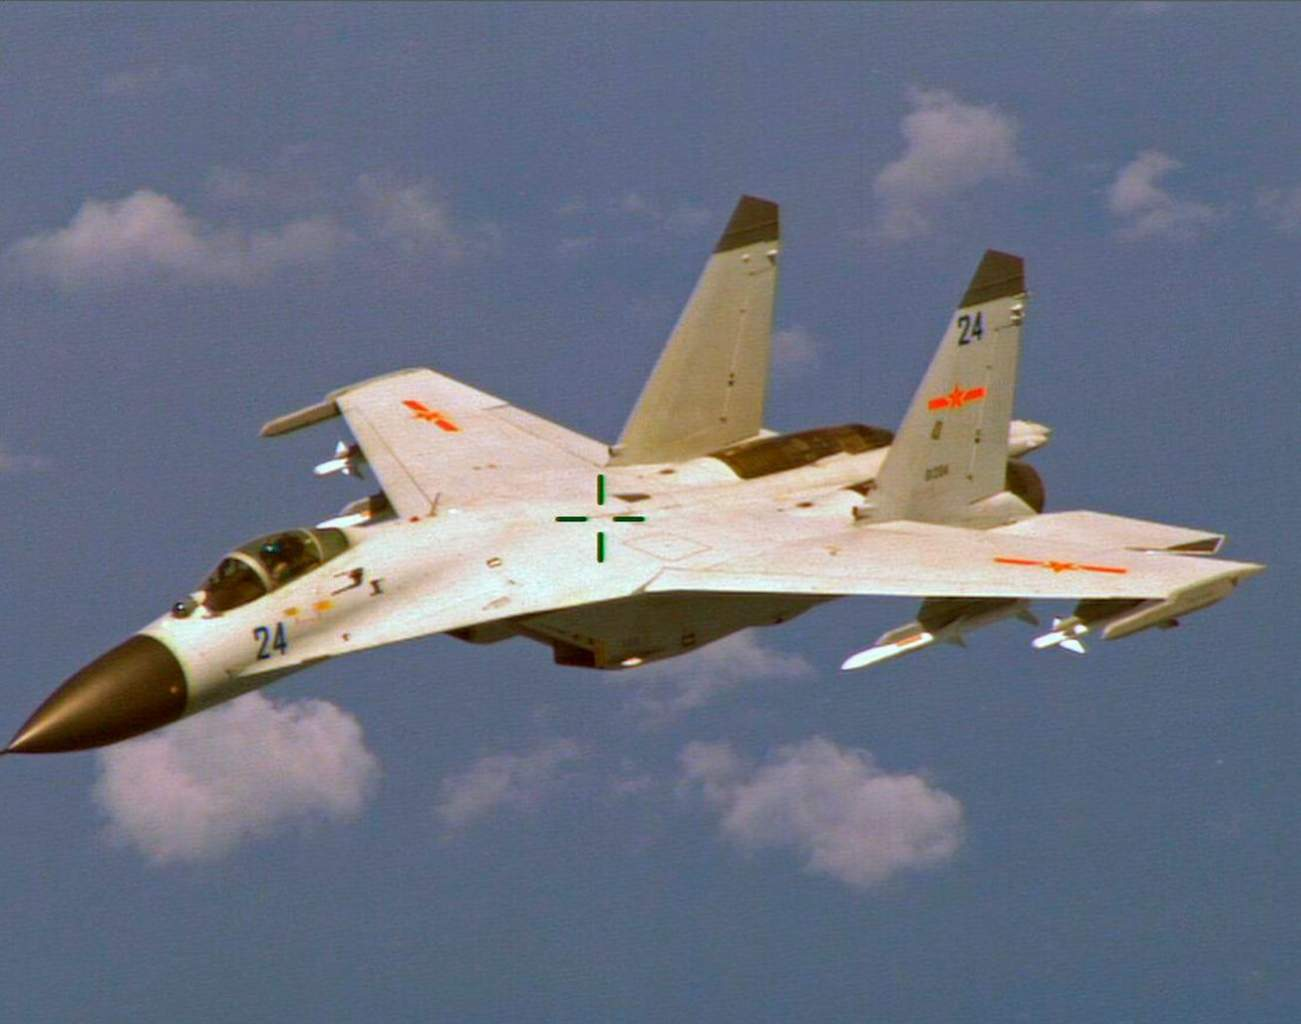 Caught: China's J-11 Fighter Sure Does Look Like a Copy of Russia's SU-27 'Flanker'